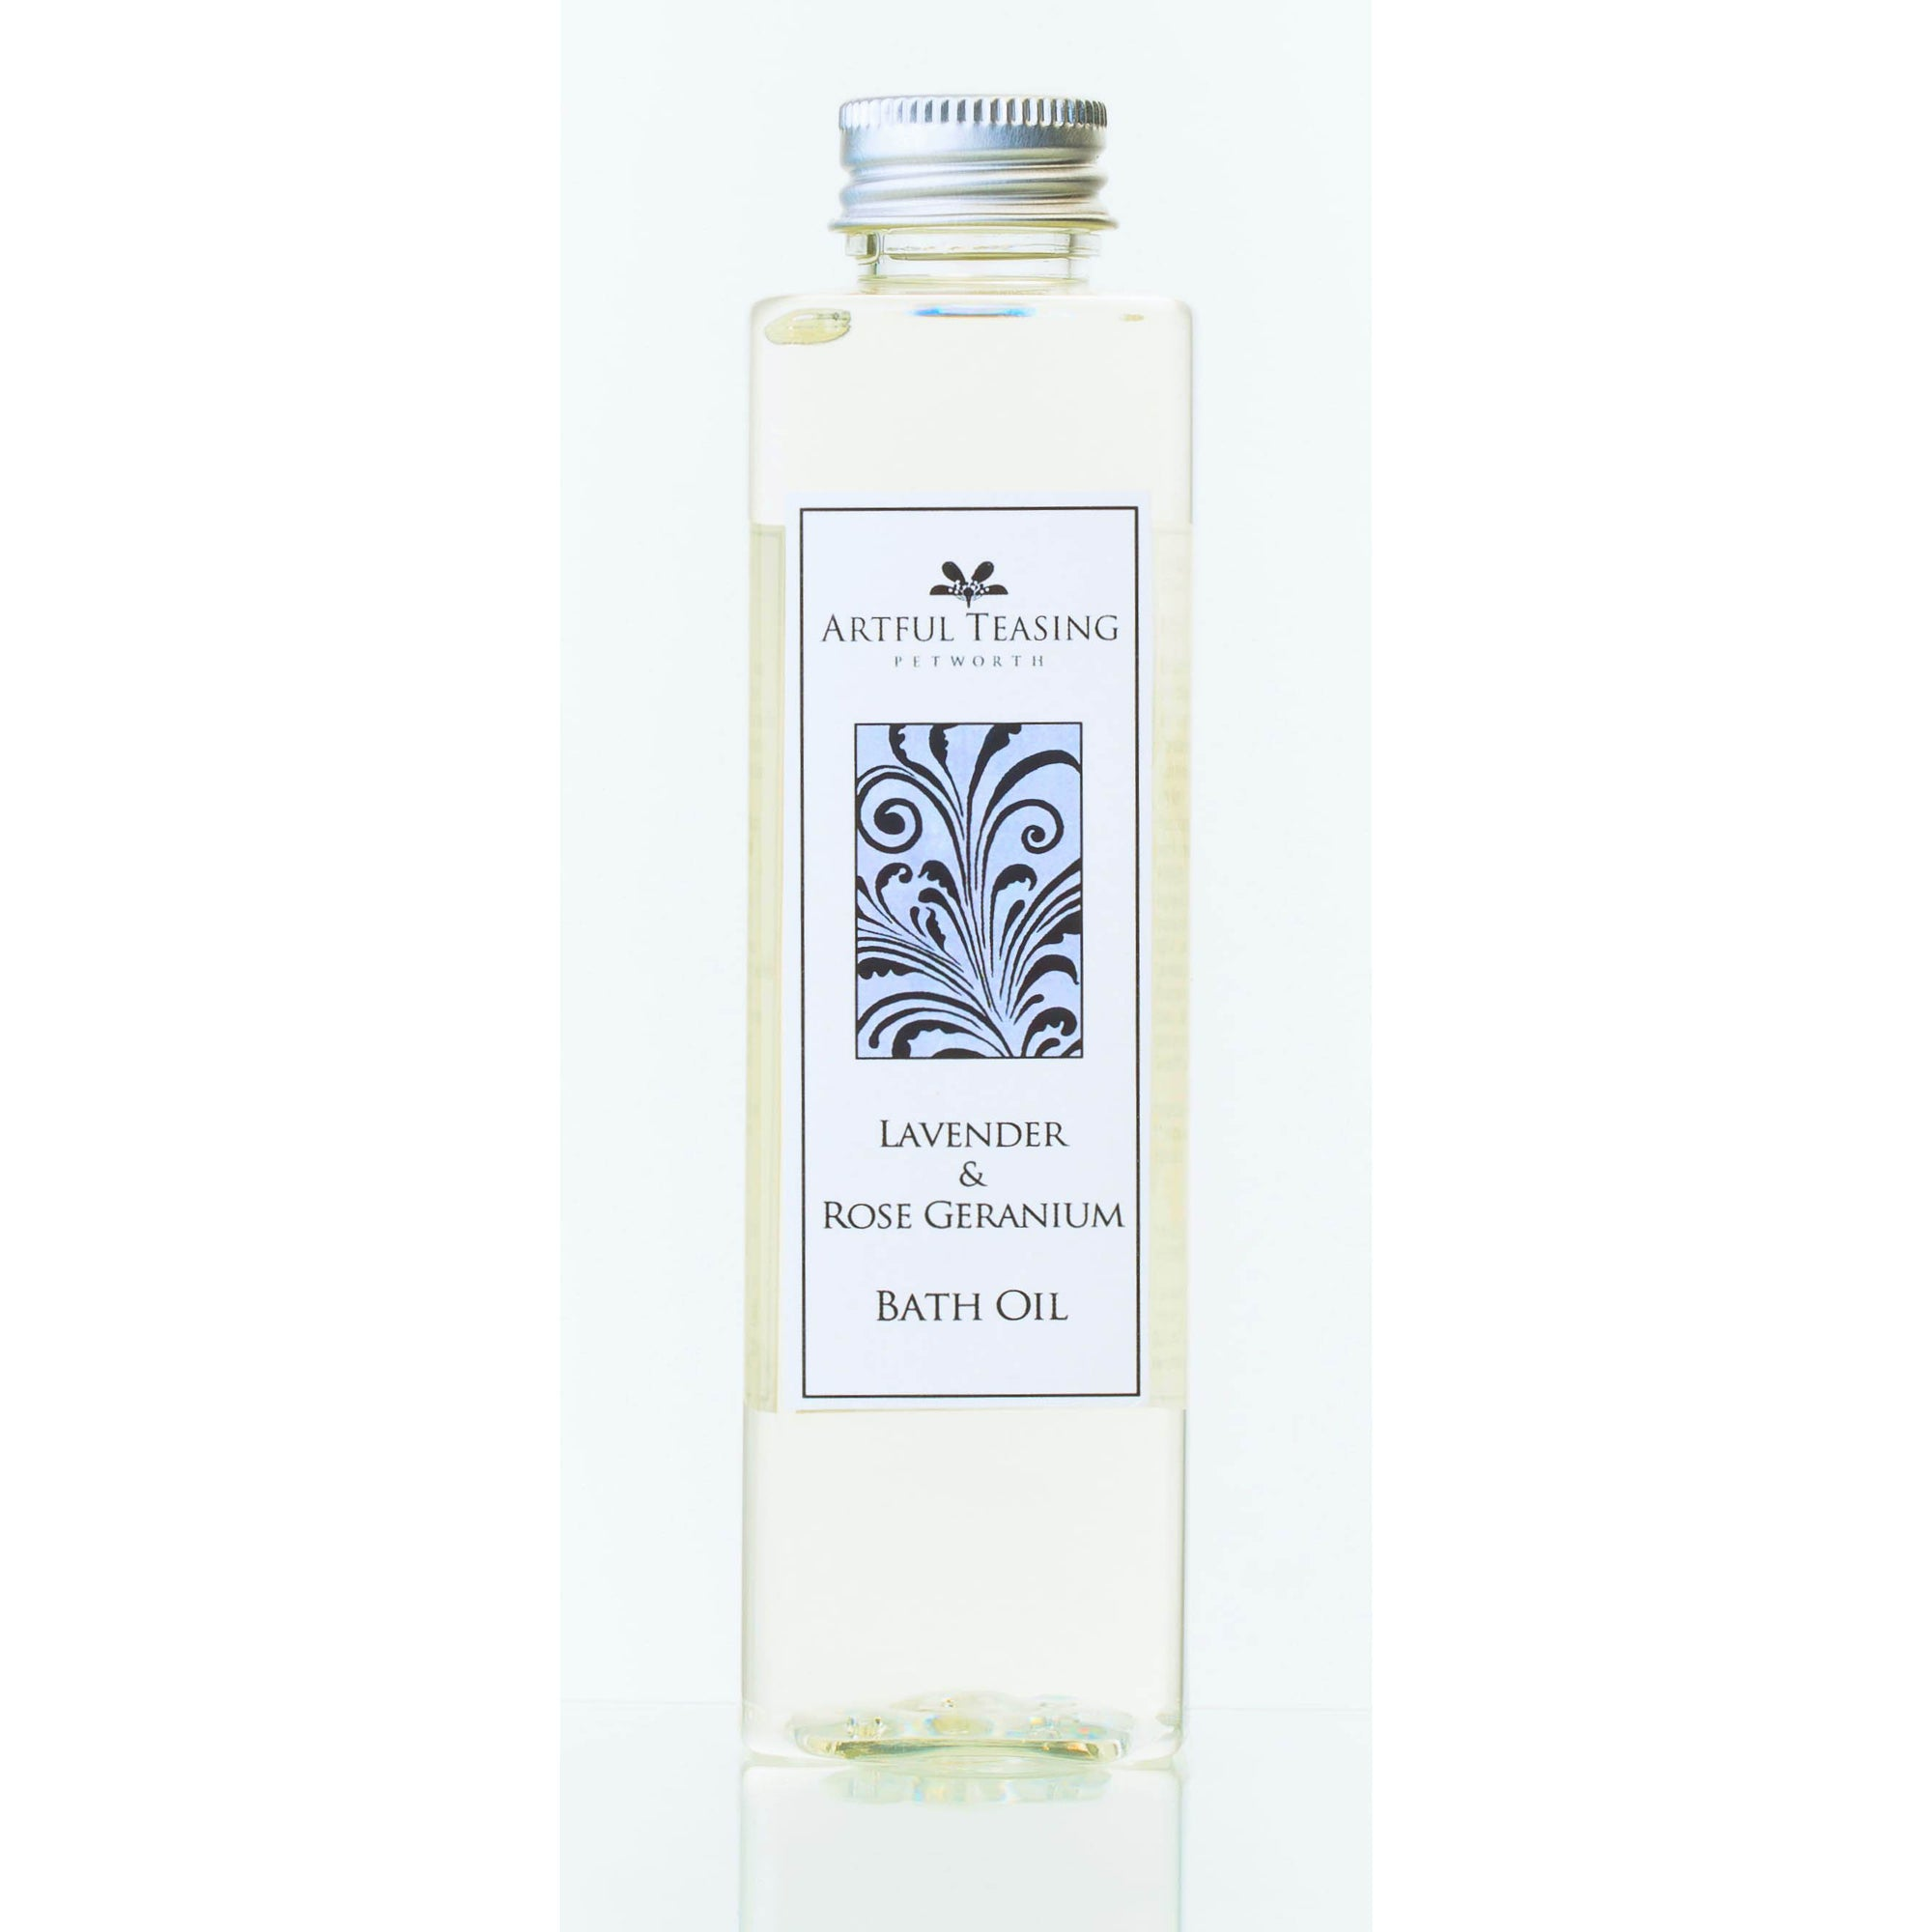 Lavender & Rose Geranium Bath Oil 200ml